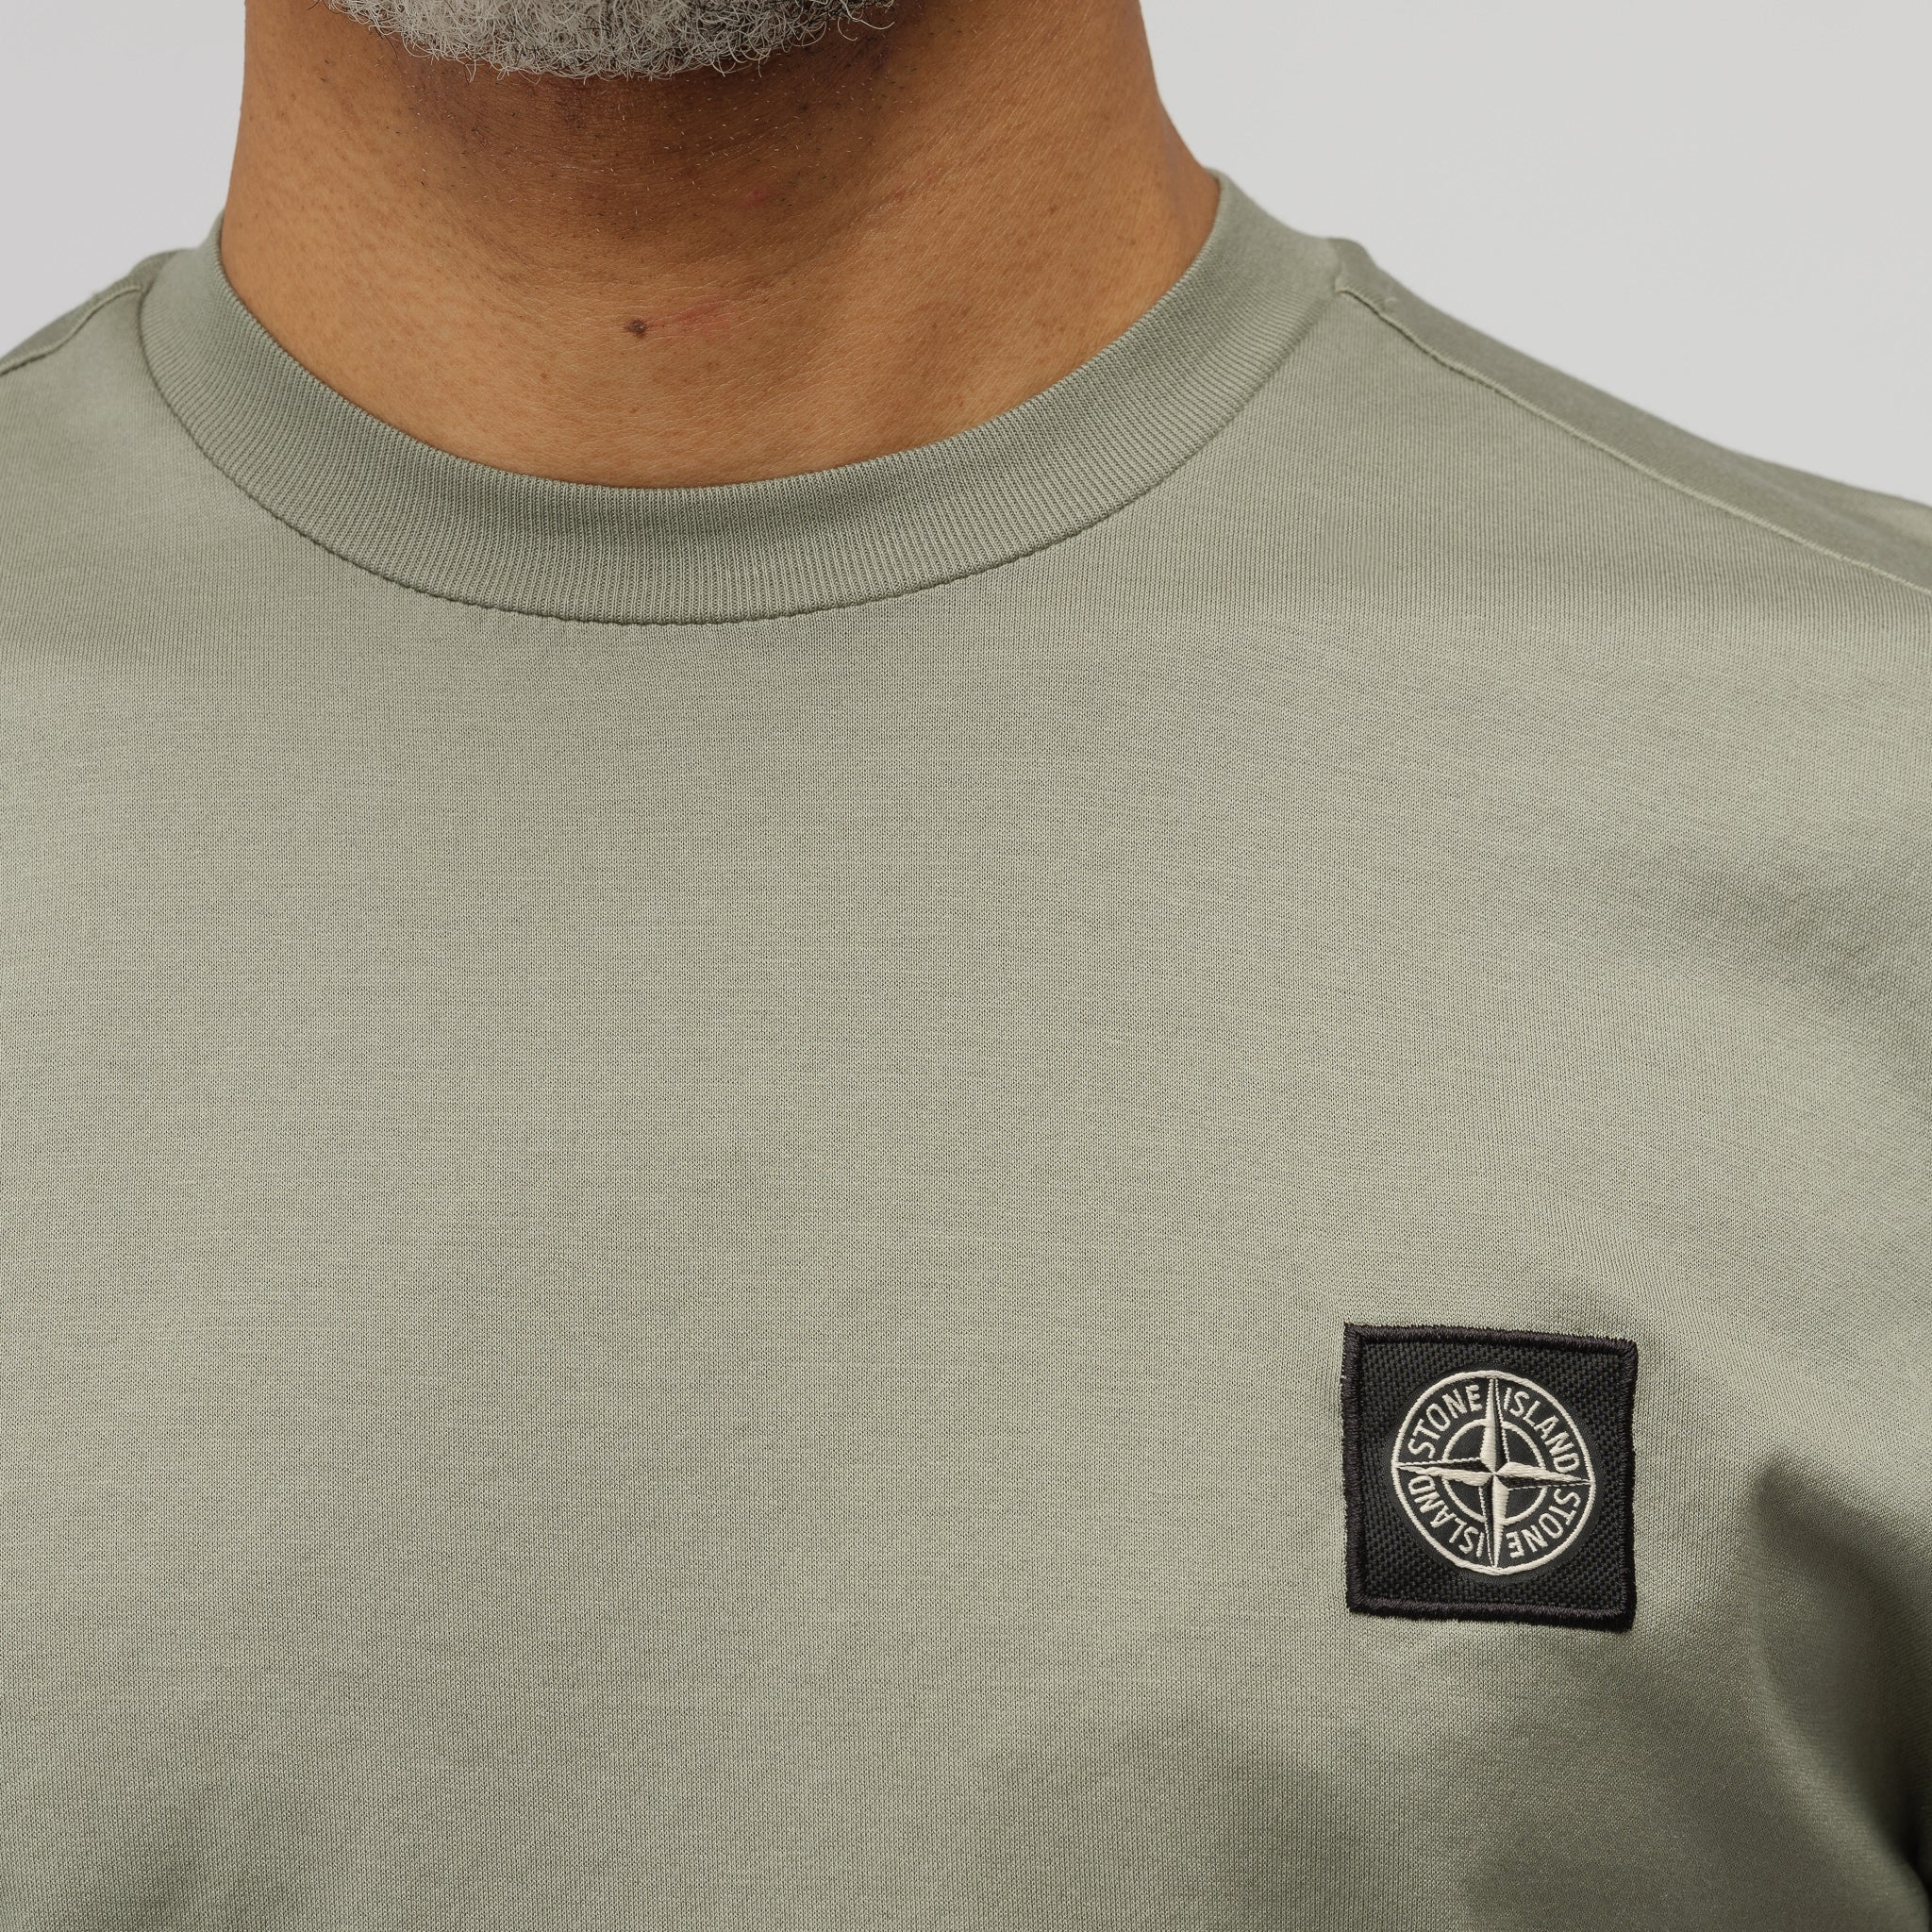 24113 Short Sleeve T-Shirt in Sage Green